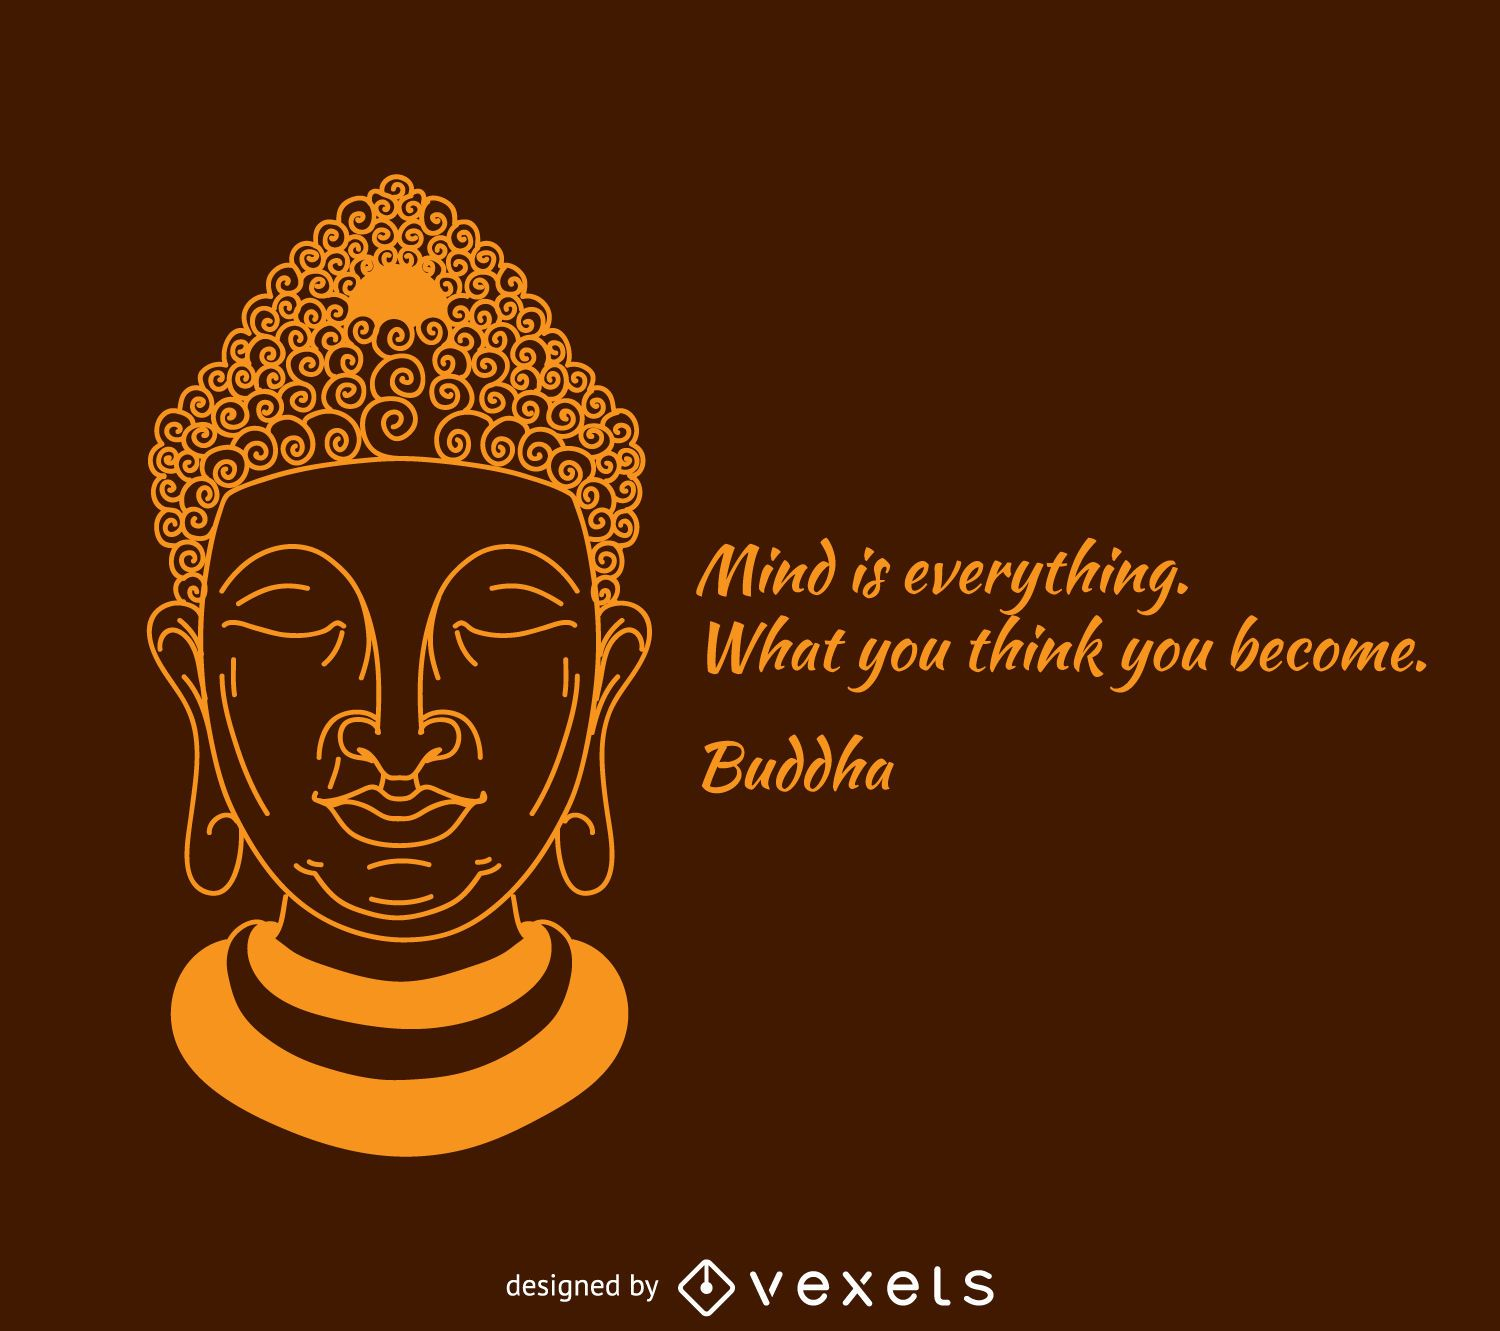 Eternal knot buddhism symbol vector download mind is everything buddha poster biocorpaavc Gallery